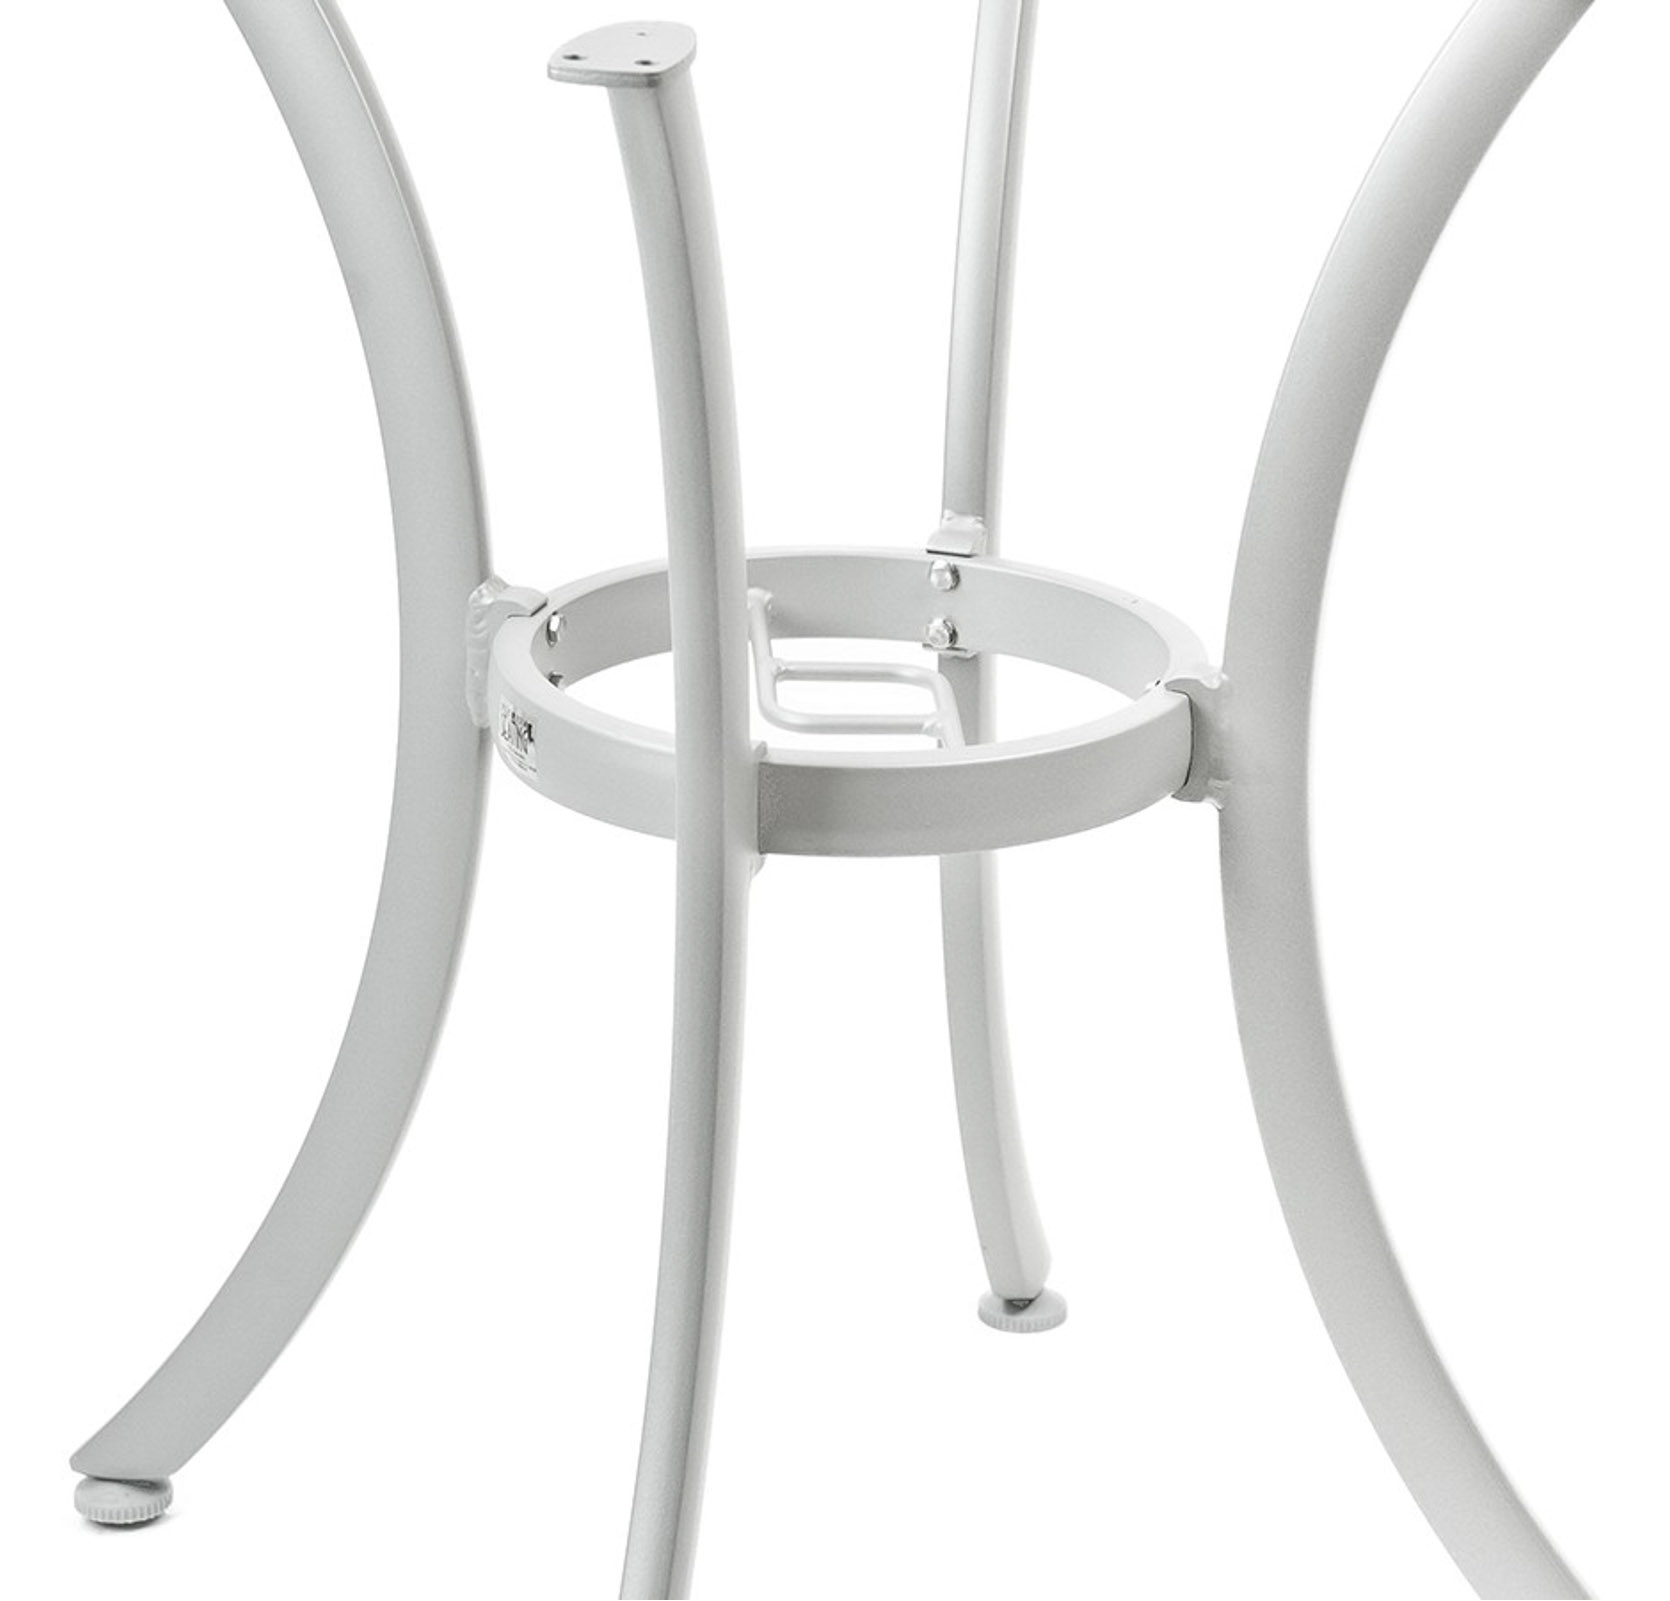 4 Leg Outdoor Table Bases Sal1316 For Commercial